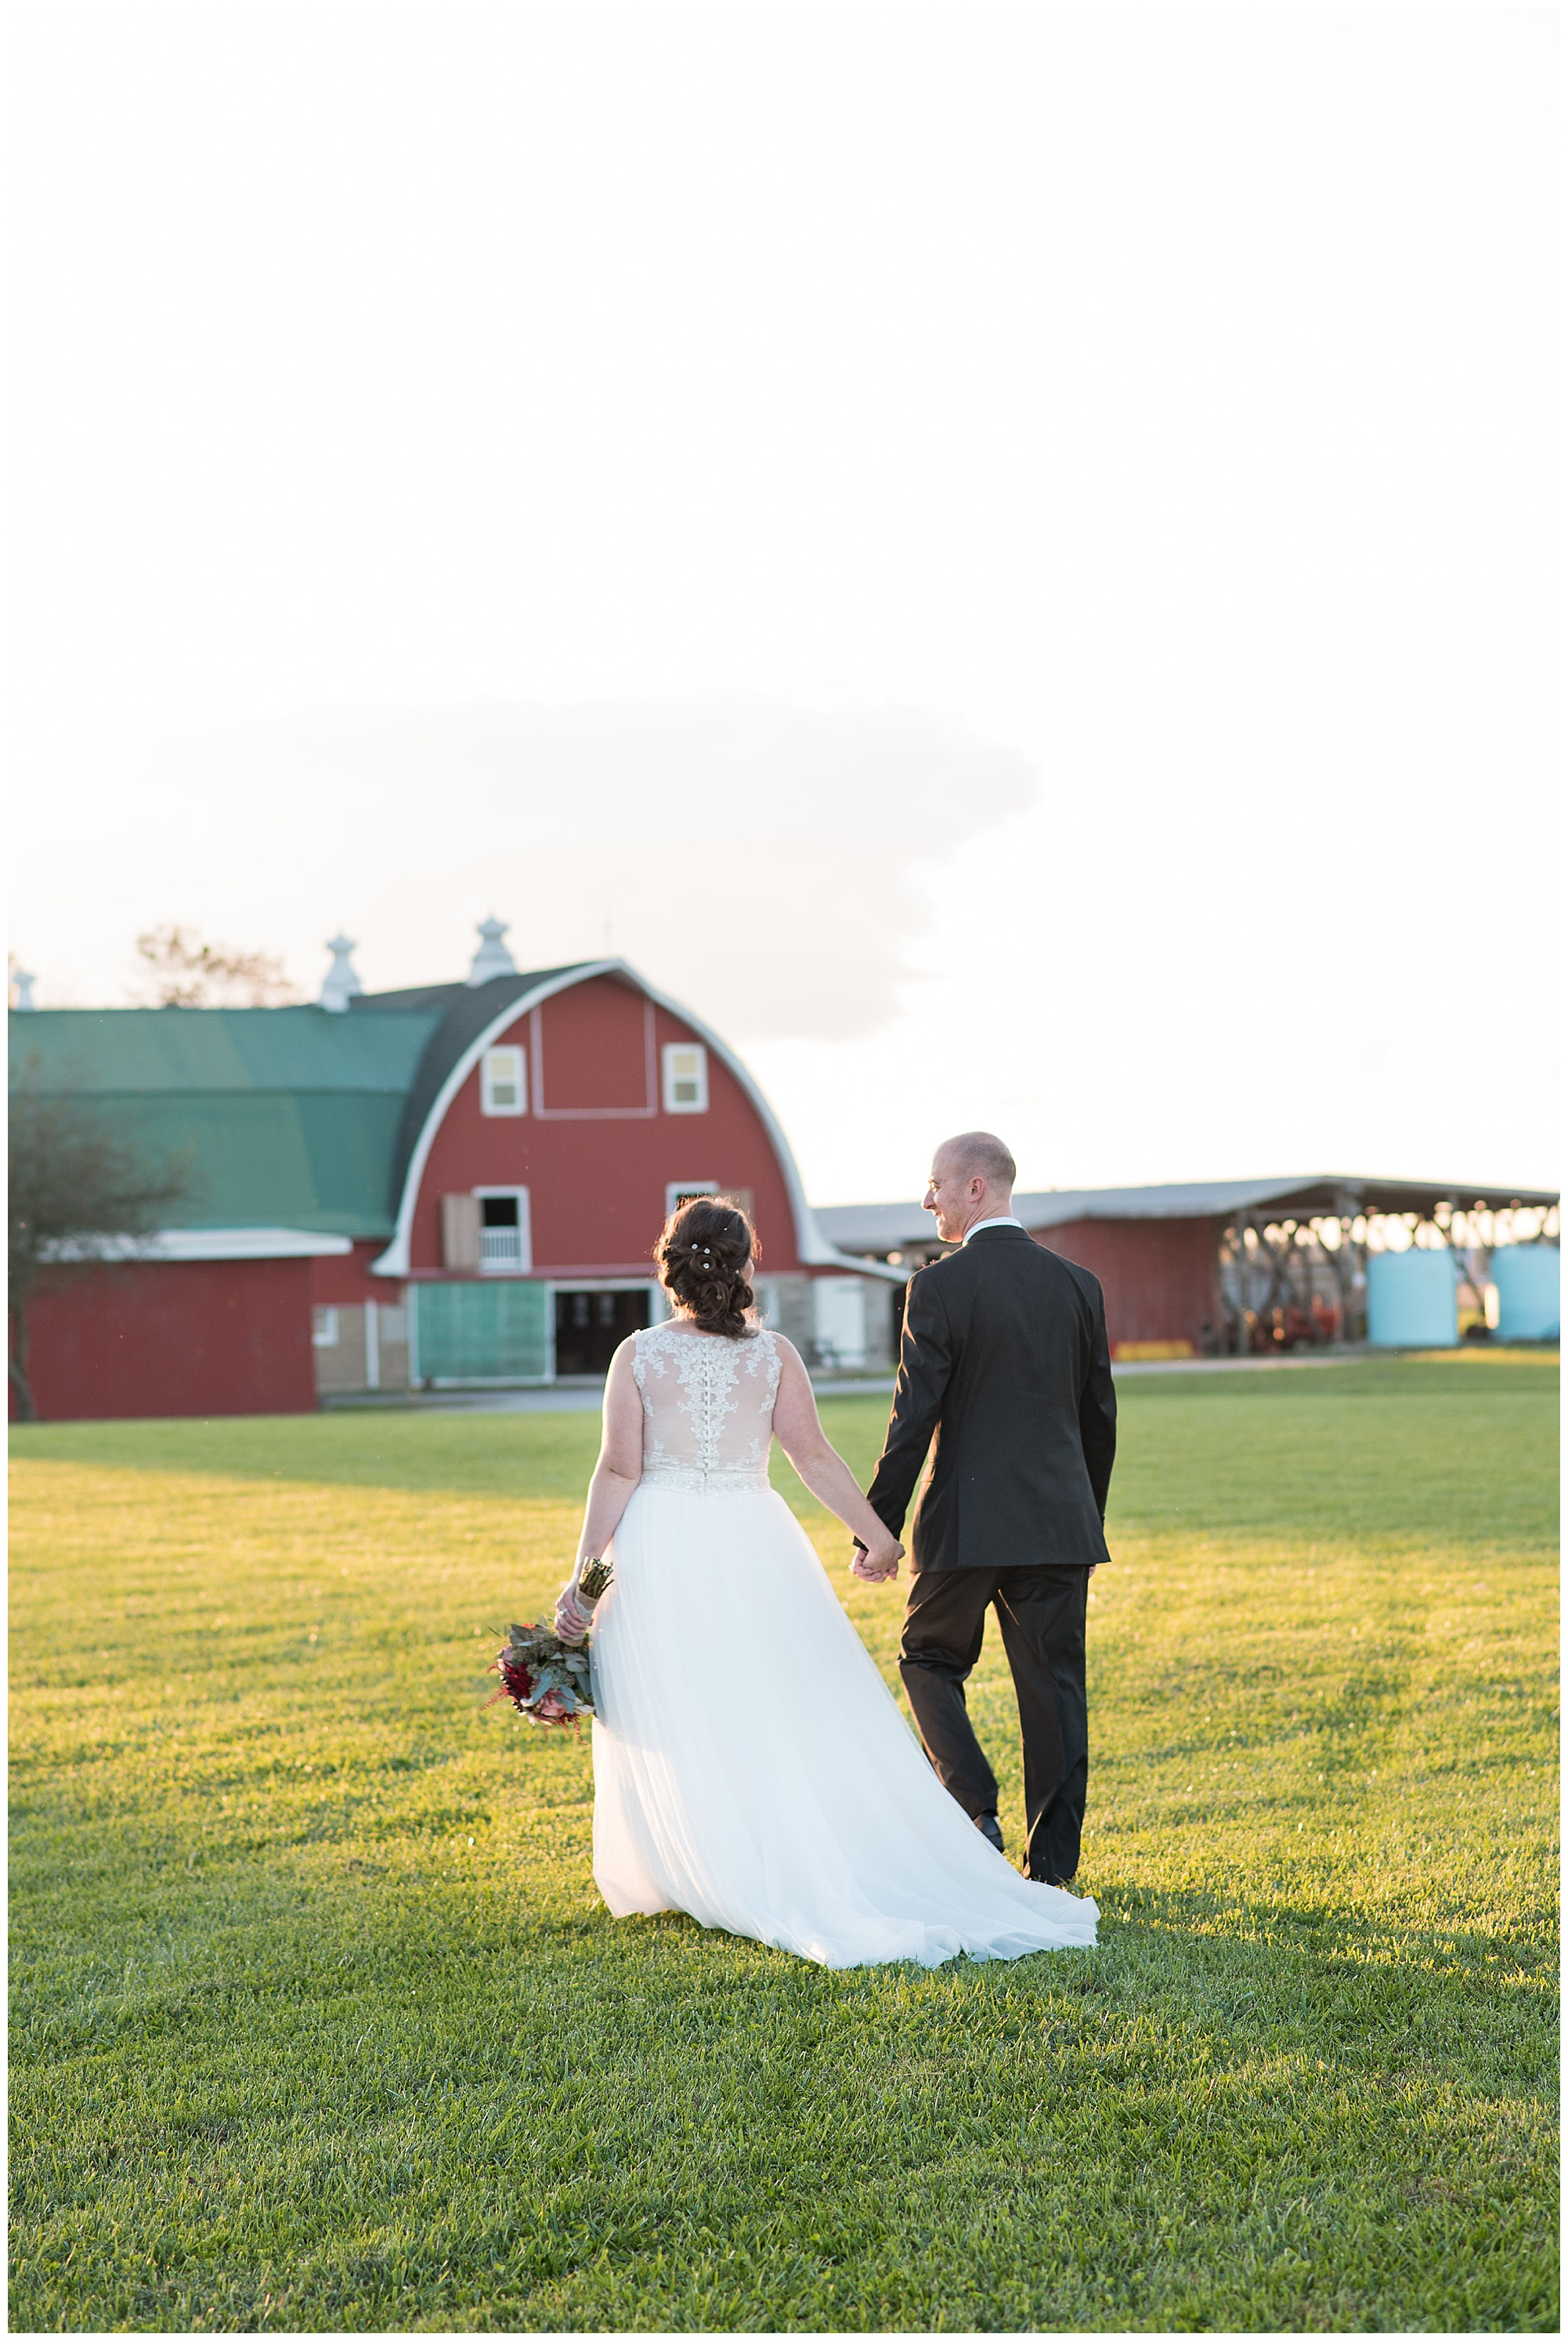 wedding photos at covered bridge inn bed and breakfast farm in lewes delaware. historic wedding barn venue on the eastern shore. fall wedding in november with rustic decor theme. couple walking holding hands towards red barn wearing white wedding dress and black suit. the sun is setting in the background.